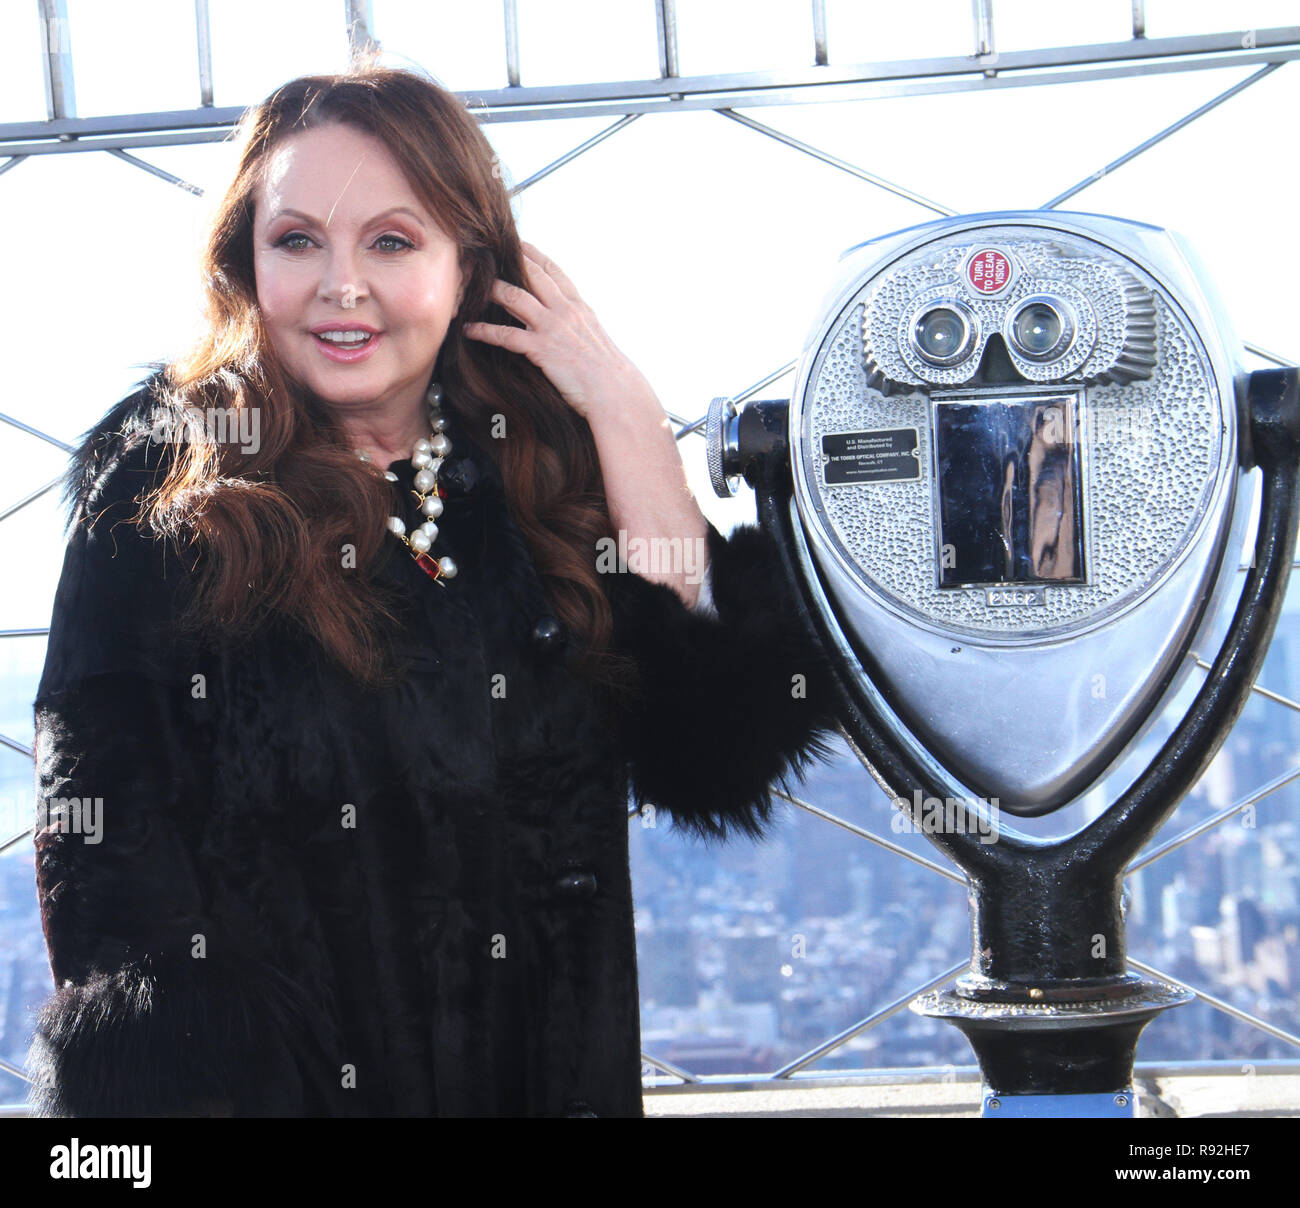 New York, NY, USA  18th Dec, 2018  Sarah Brightman visits the Empire